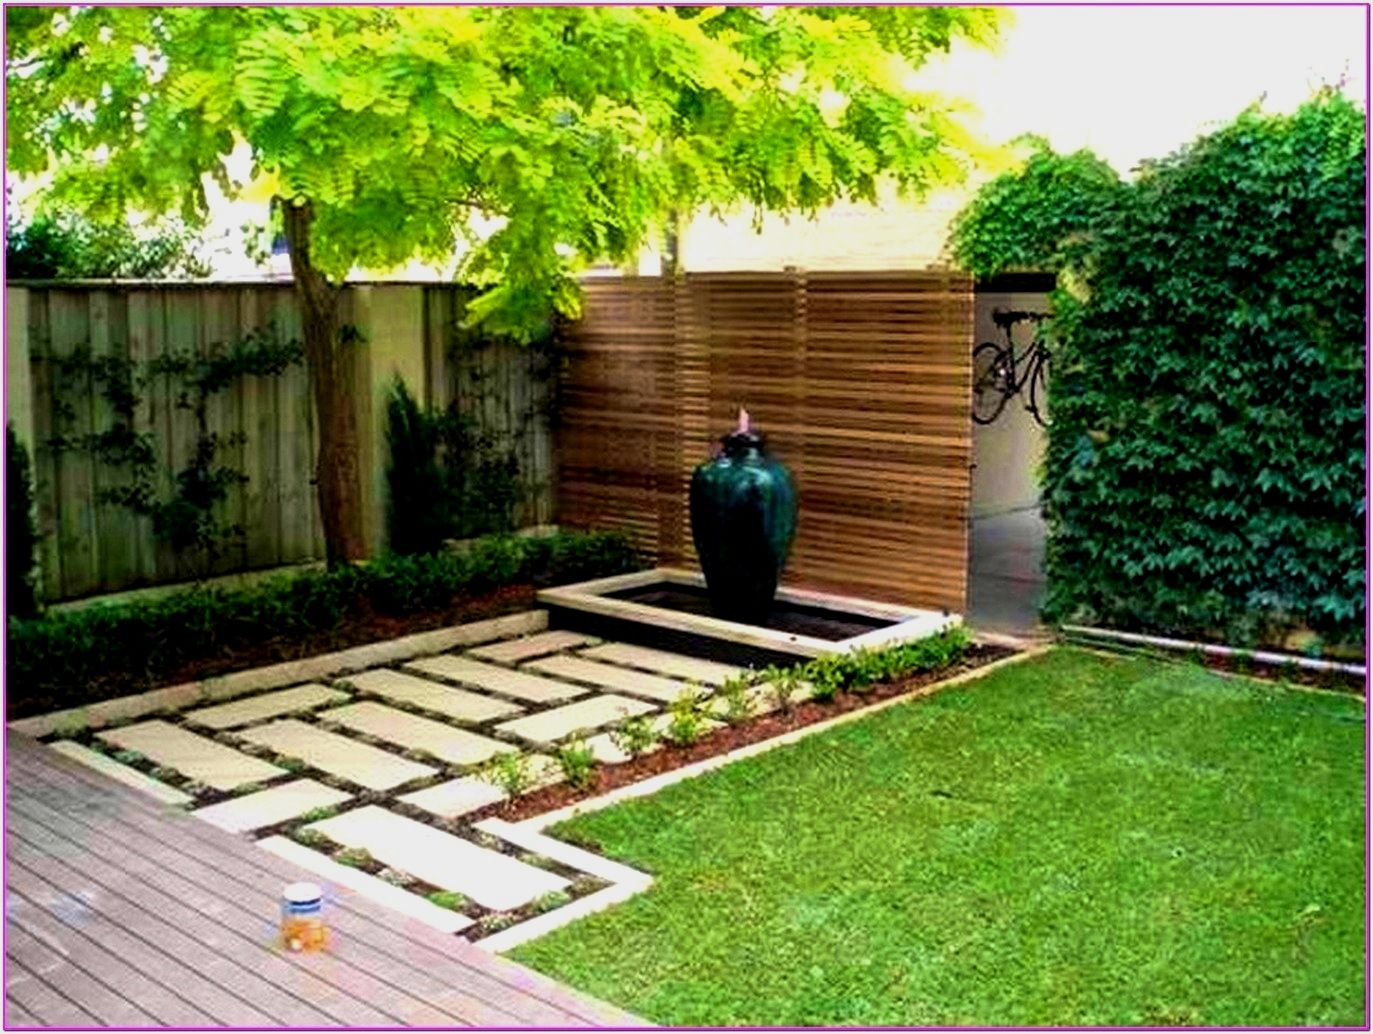 12 Awesome Landscape Plans You Might Try For Your Home Divine Cheap Landscapin Inexpensive Landscaping Large Backyard Landscaping Small Backyard Landscaping